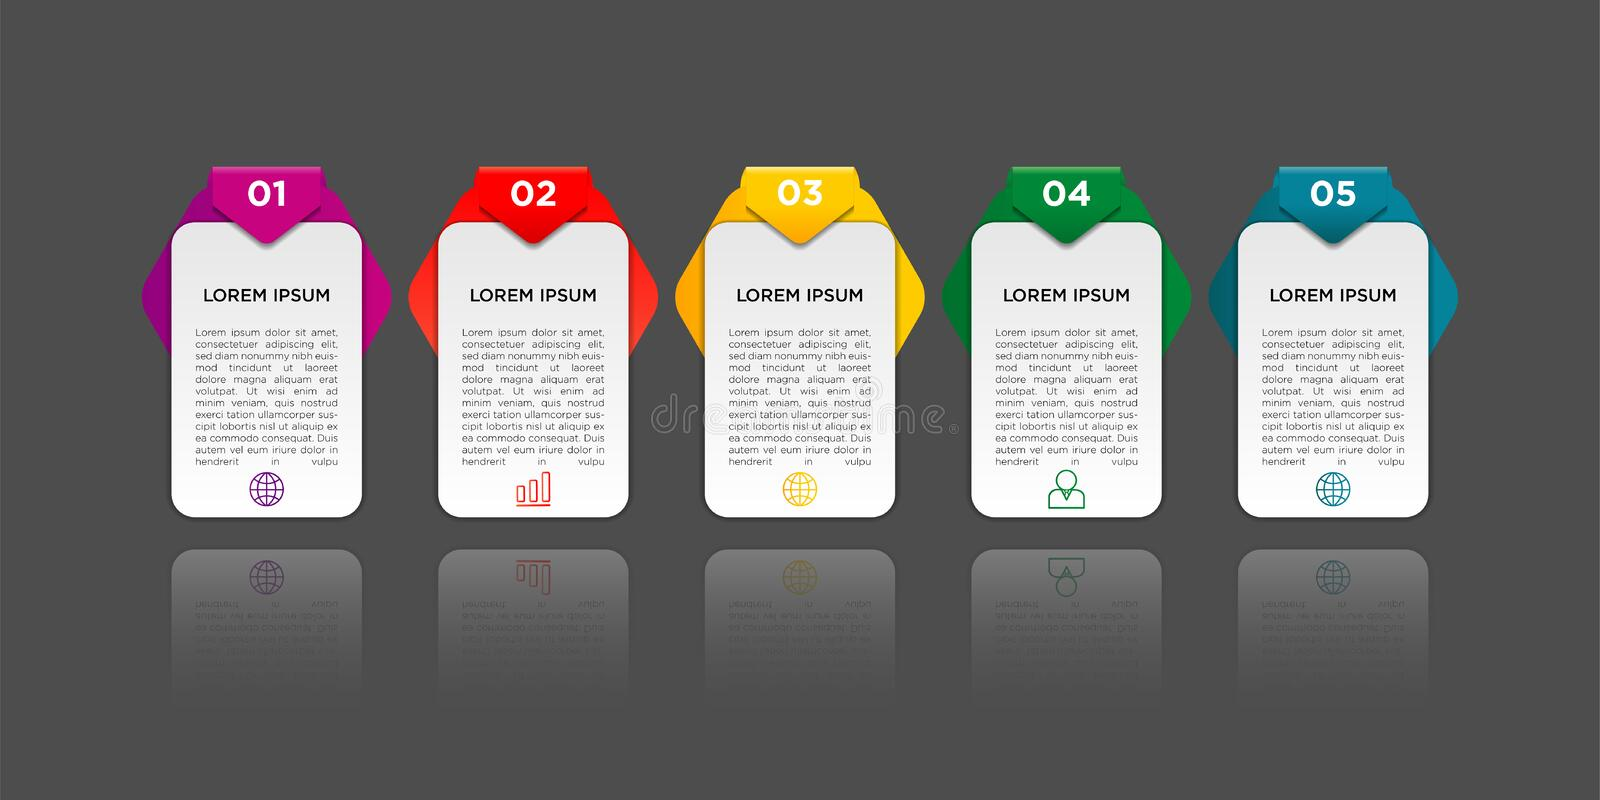 Infographic design with gradient and paper shadow effect 5 options or steps. Infographics business concept royalty free illustration